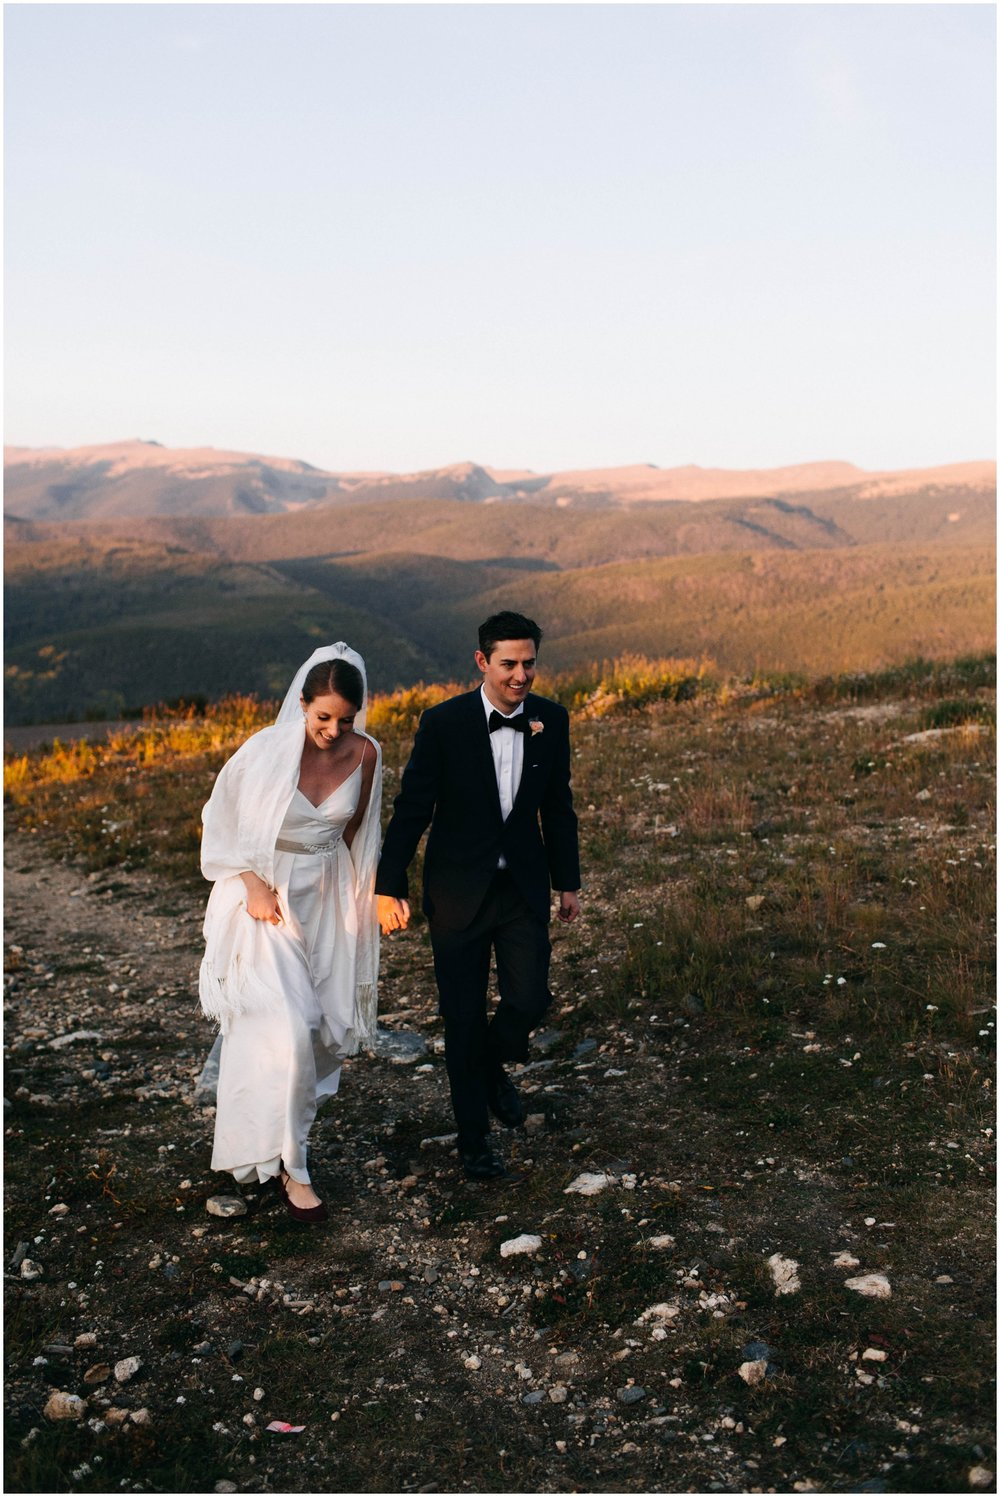 NadegeandJoe_elegant_winter_park_wedding_lodge_at_sunspot_mountain_taylor_powers_0247.jpg